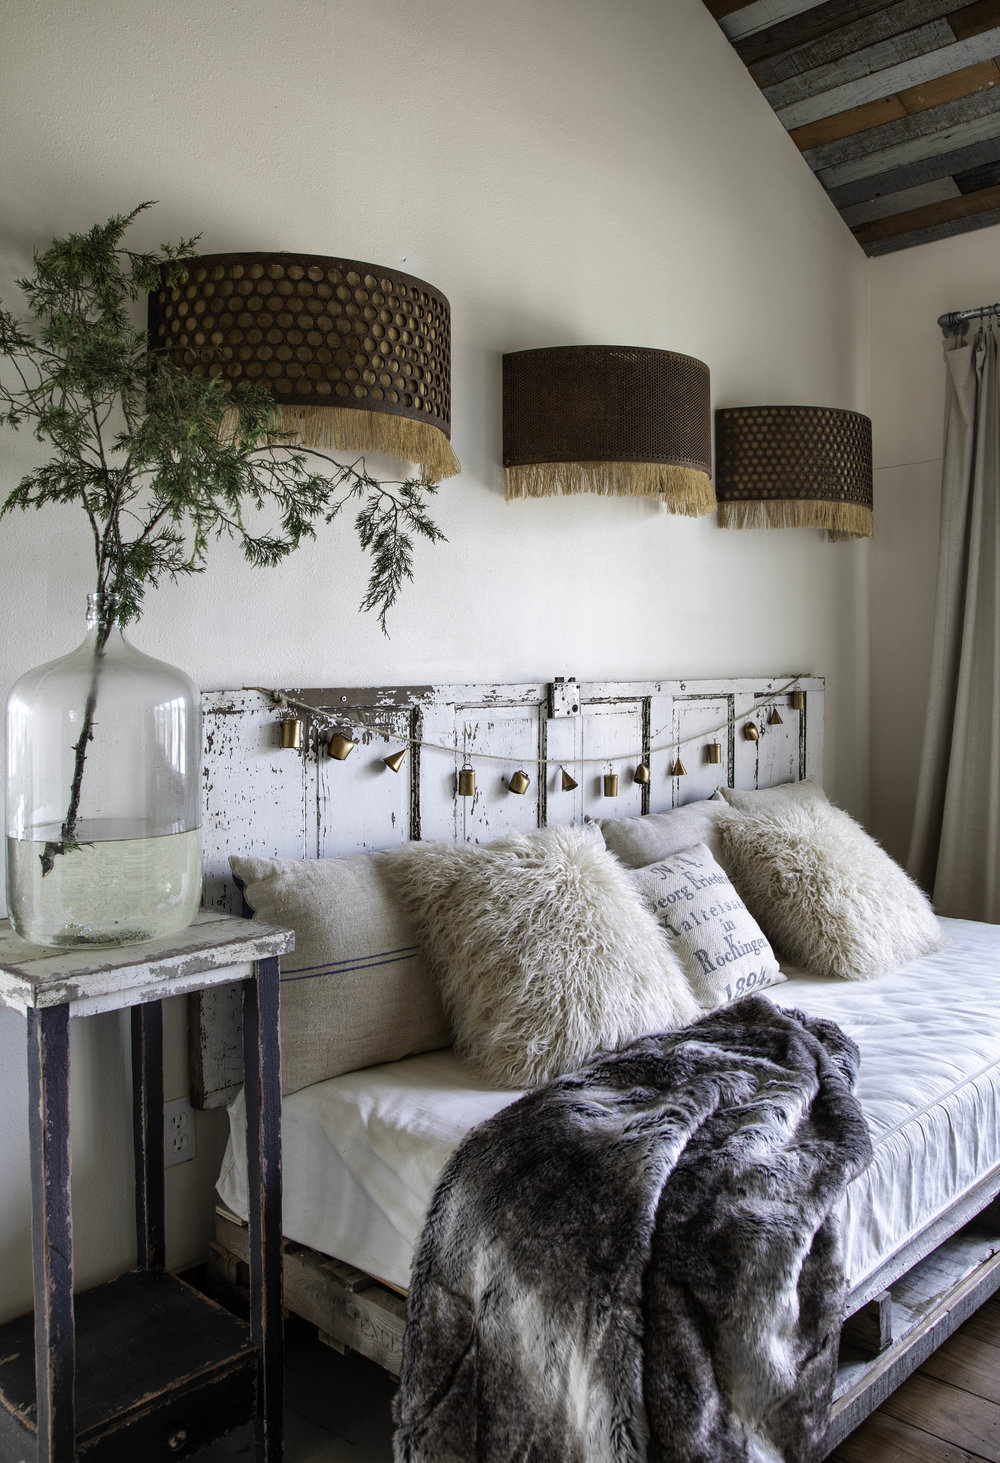 Origin Magazine. Paige's Blog. No. 1450 Daybed. Kerry Kirk Photo. Day beds. Styled shoot. RVT Swedish Style